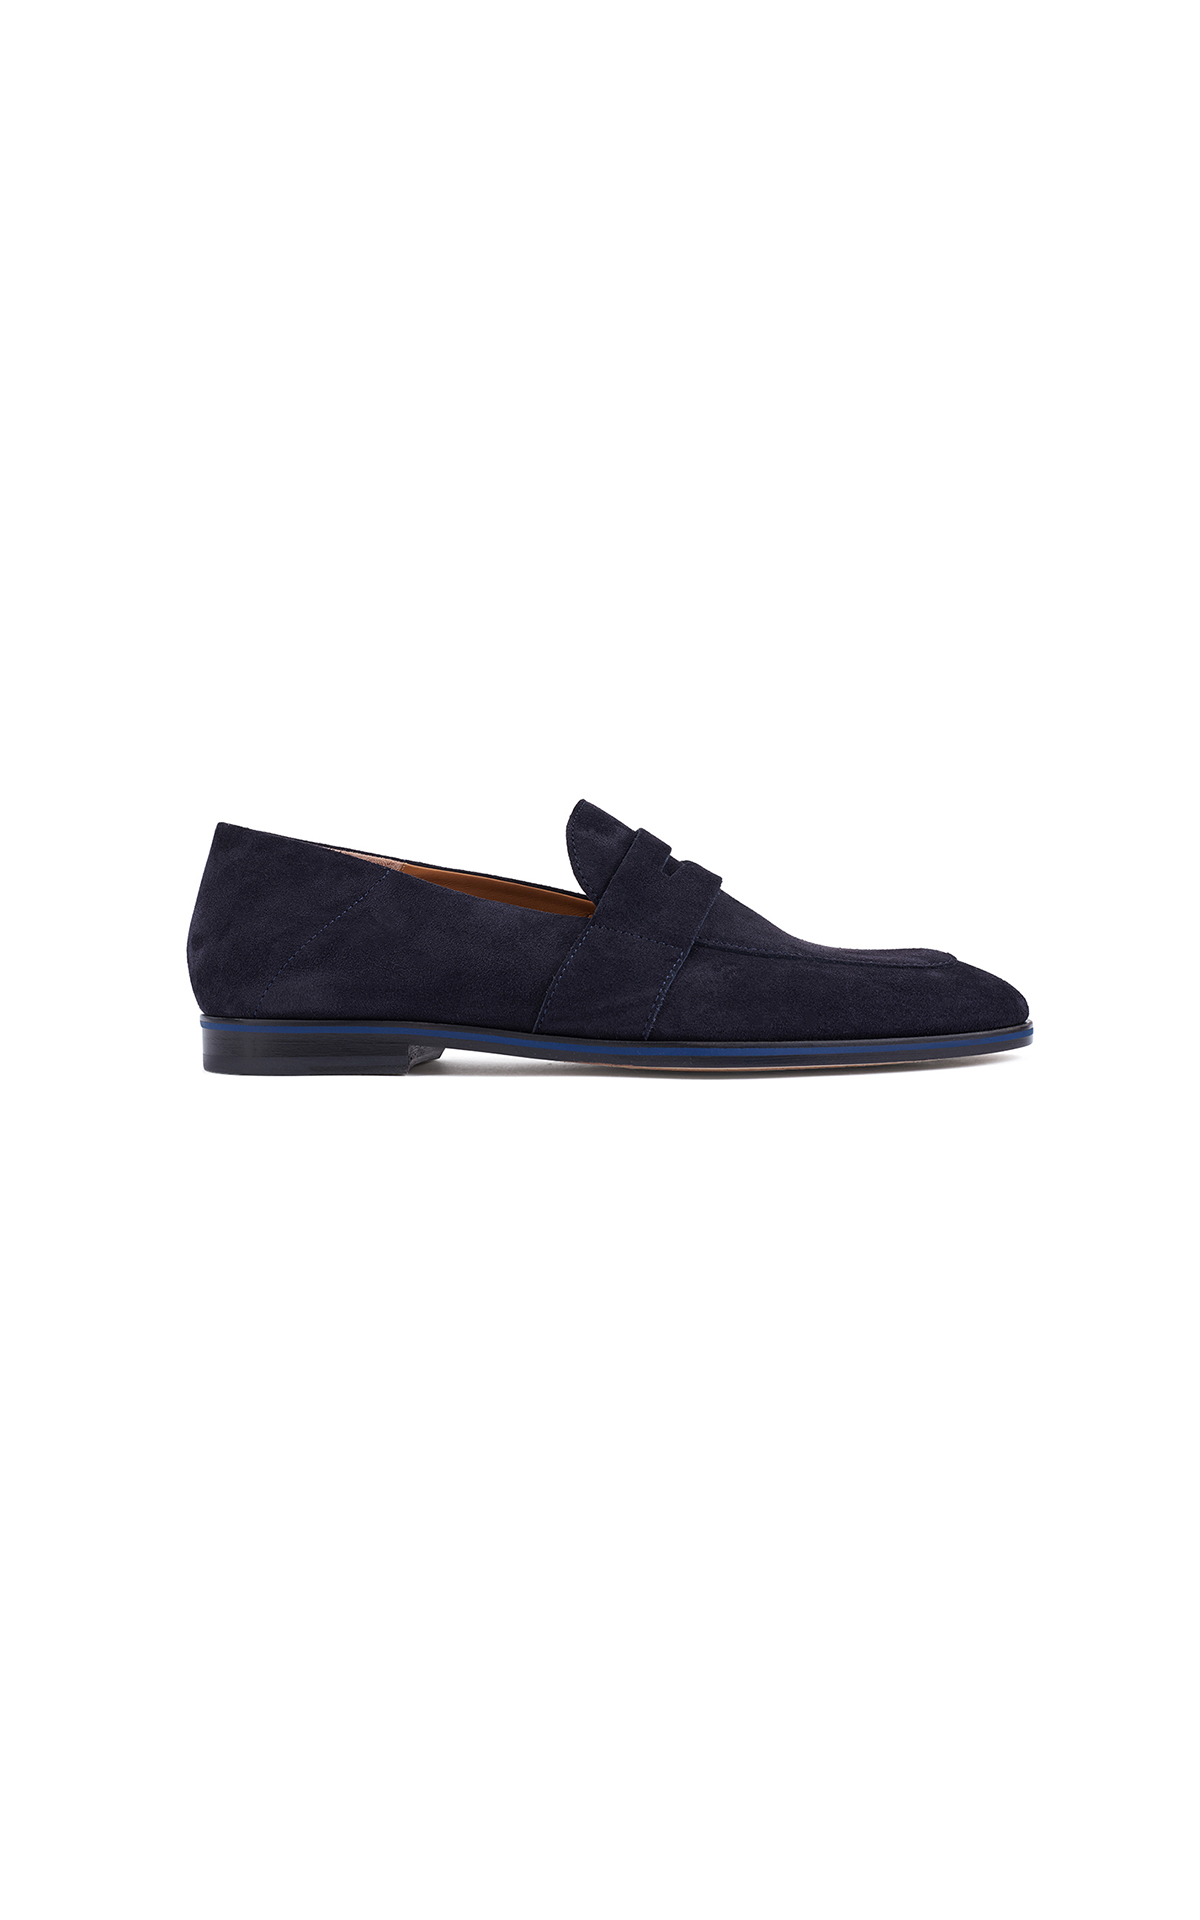 BOSS Men's Italian-made loafers at The Bicester Village Shopping Collection